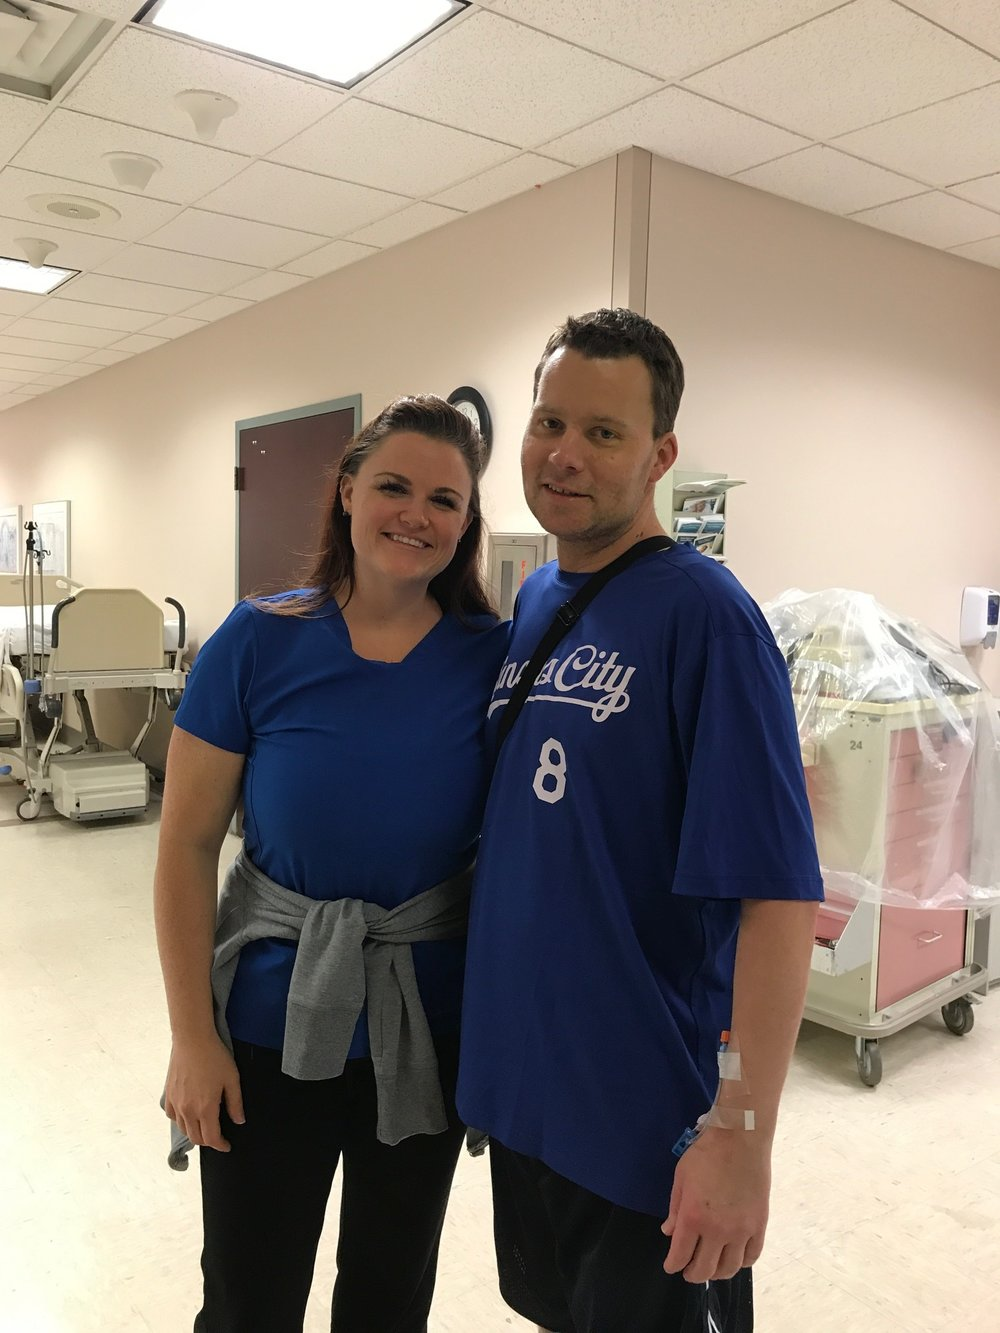 9/1/17 - Getting ready to leave the hospital saying goodbye to one of the nurses who saved me. I'm atrophied at 160 lbs with hardly any muscle (but my gut was still intact.)